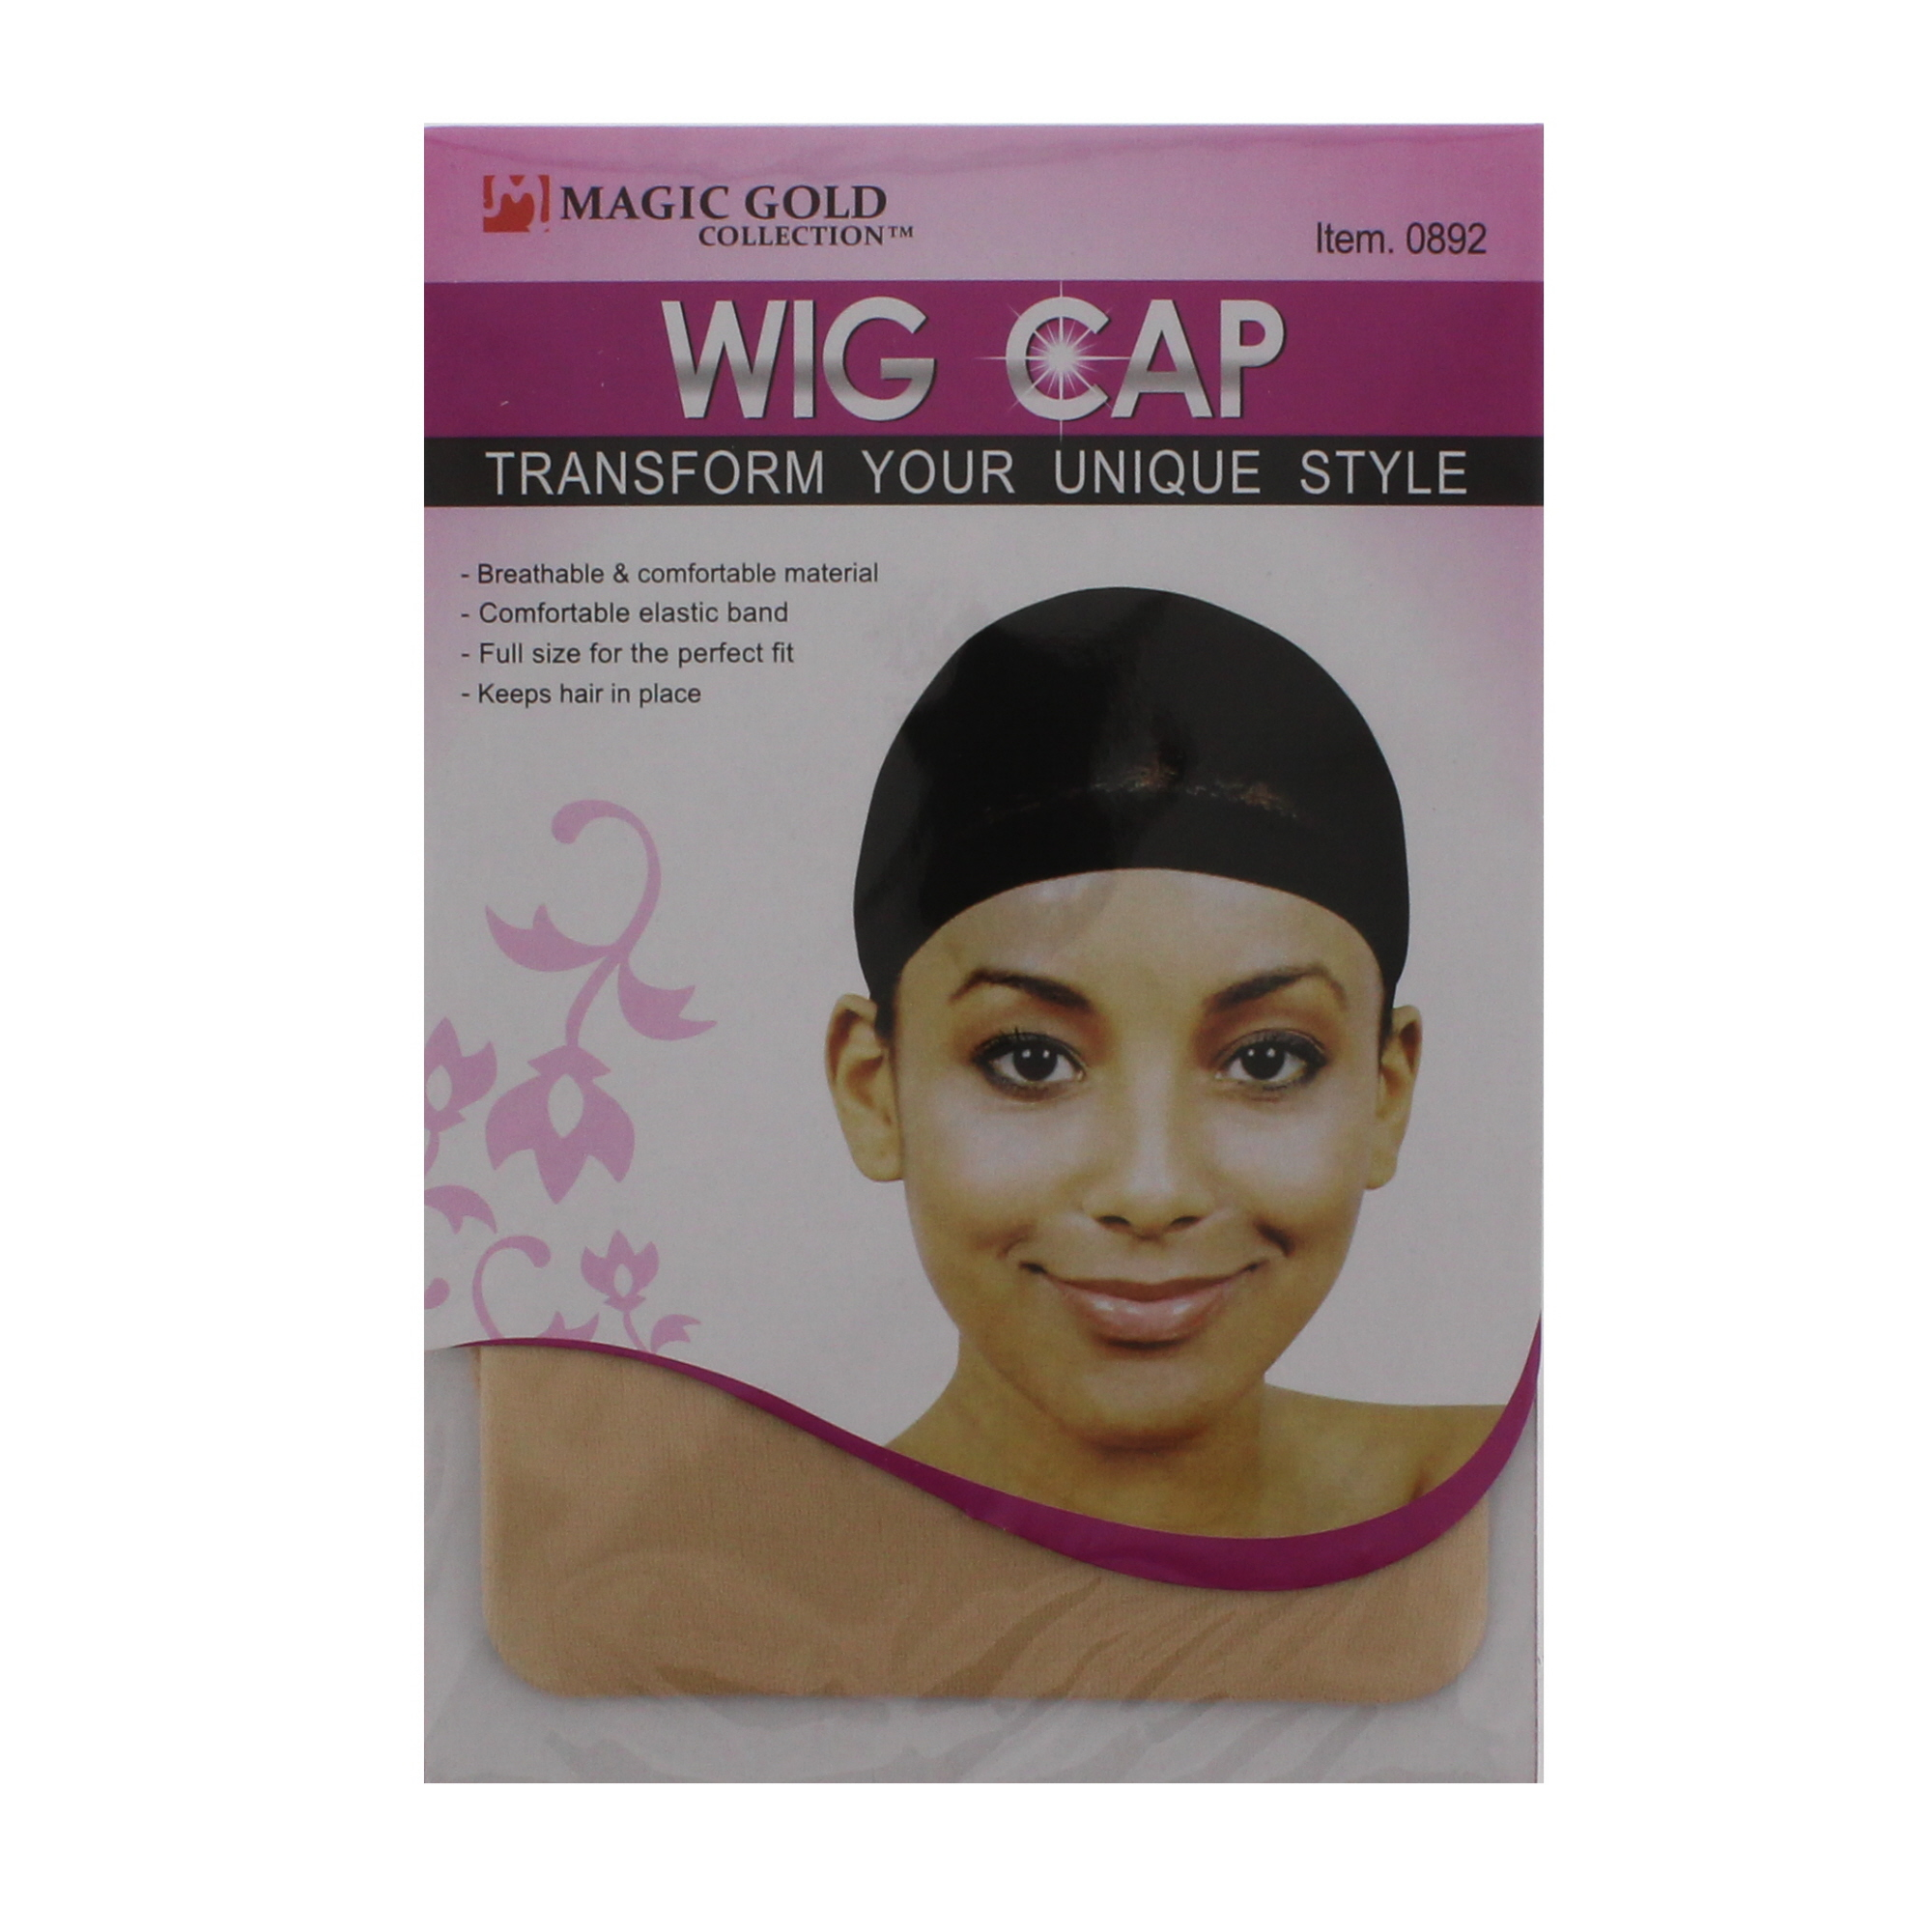 Zac-039-s-Alter-Ego-Pair-of-Comfortable-Wig-Caps-One-Size-Fits-All miniatura 6